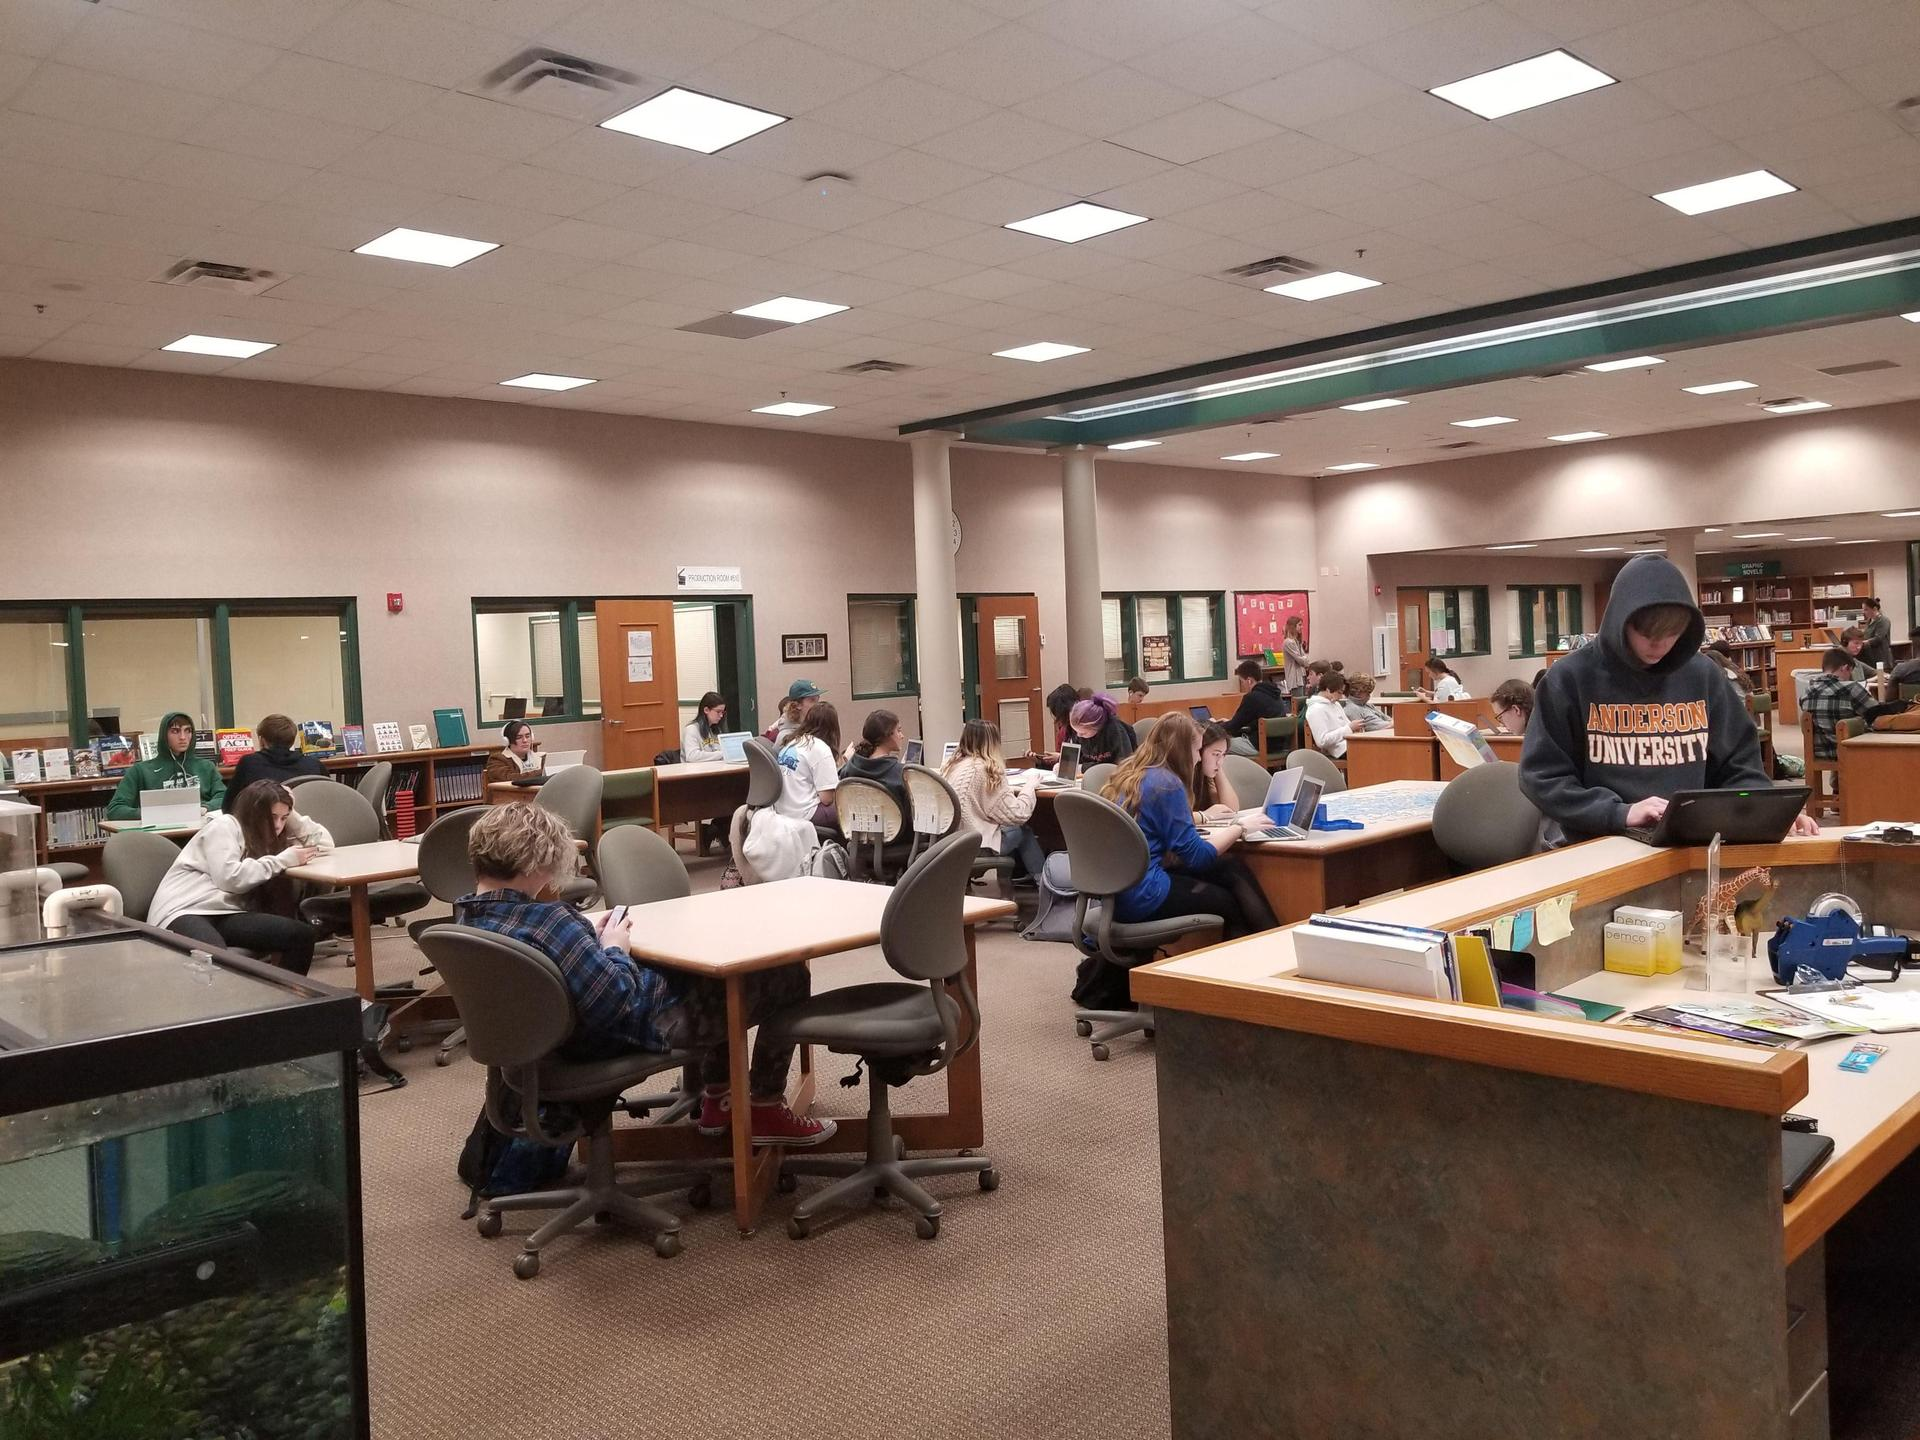 Picture of the High School Media Center with Many Students Working at Various Tables